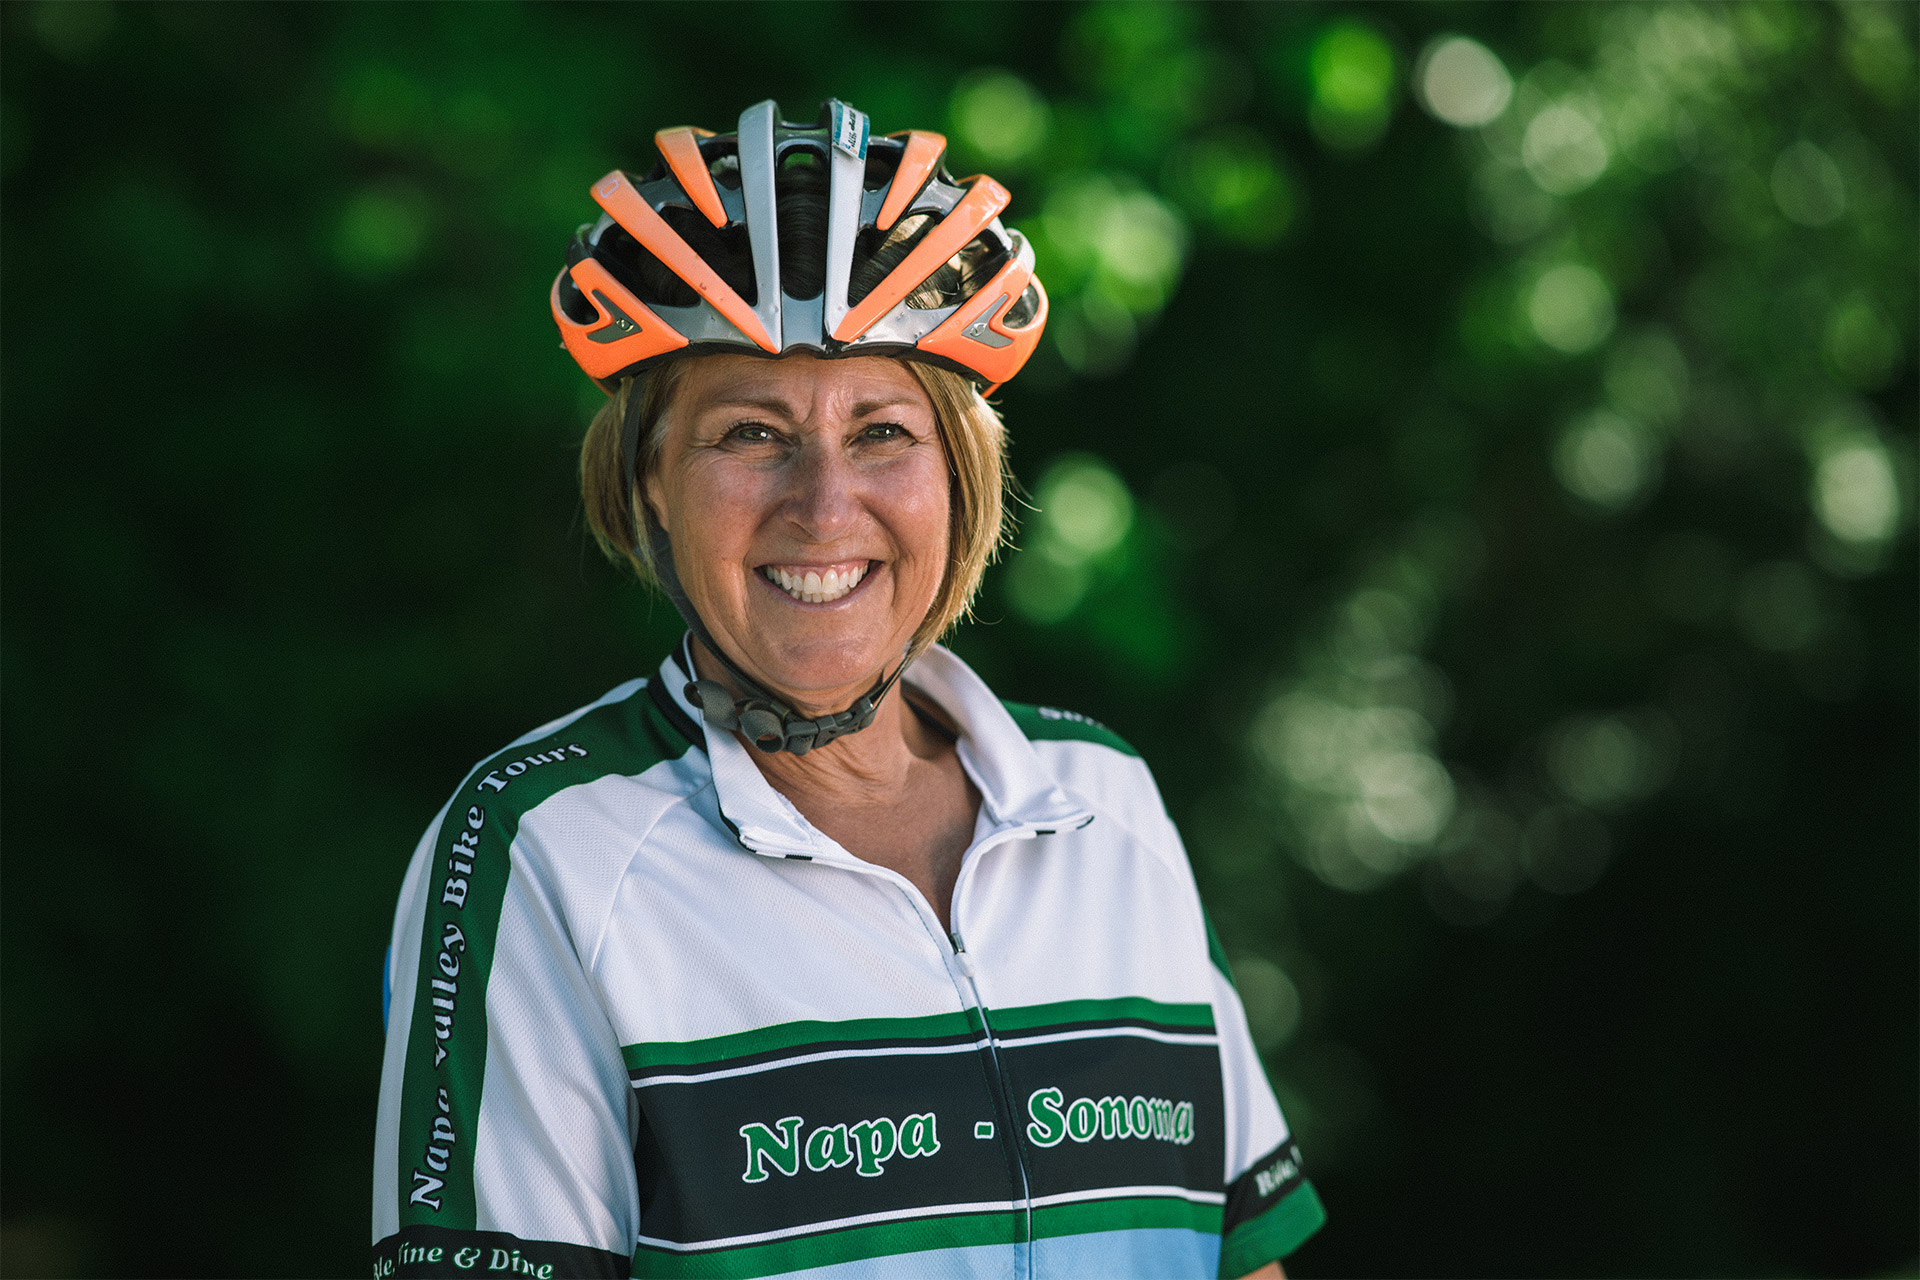 Patty smiles brightly for a photo while wearing an orange and silver biking helmet and white and green cycling kit.